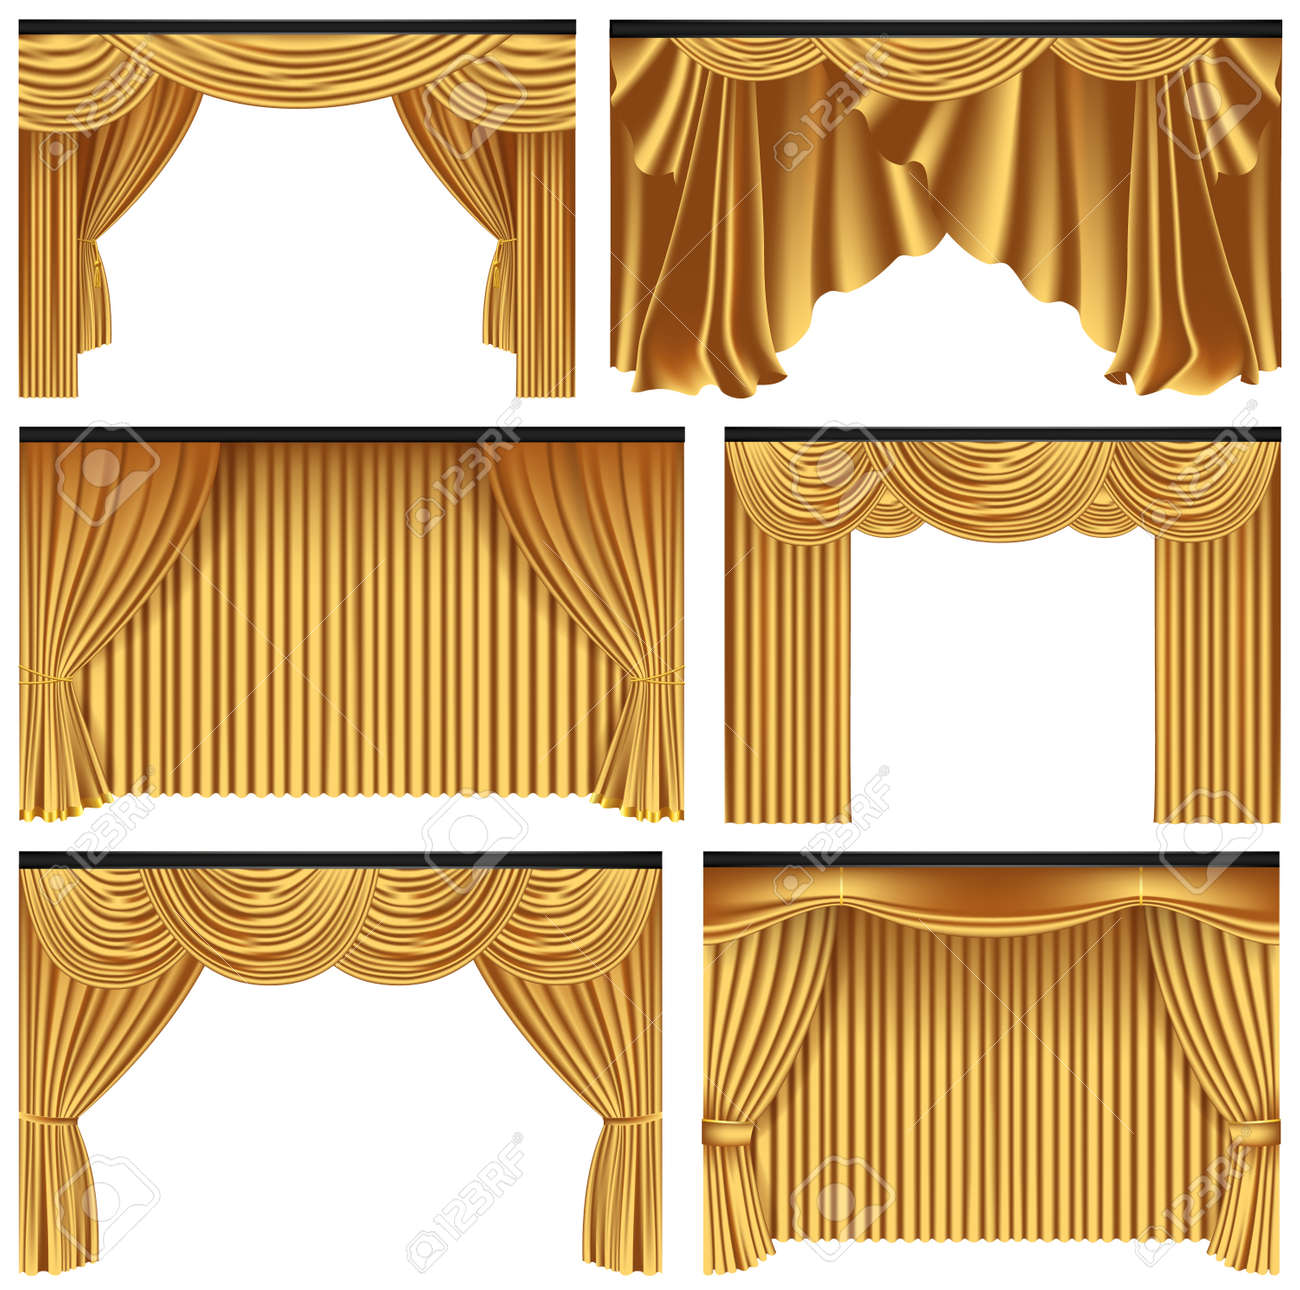 Set Of Gold Luxury Curtains And Draperies On White Background Royalty Free Cliparts Vectors And Stock Illustration Image 79878182